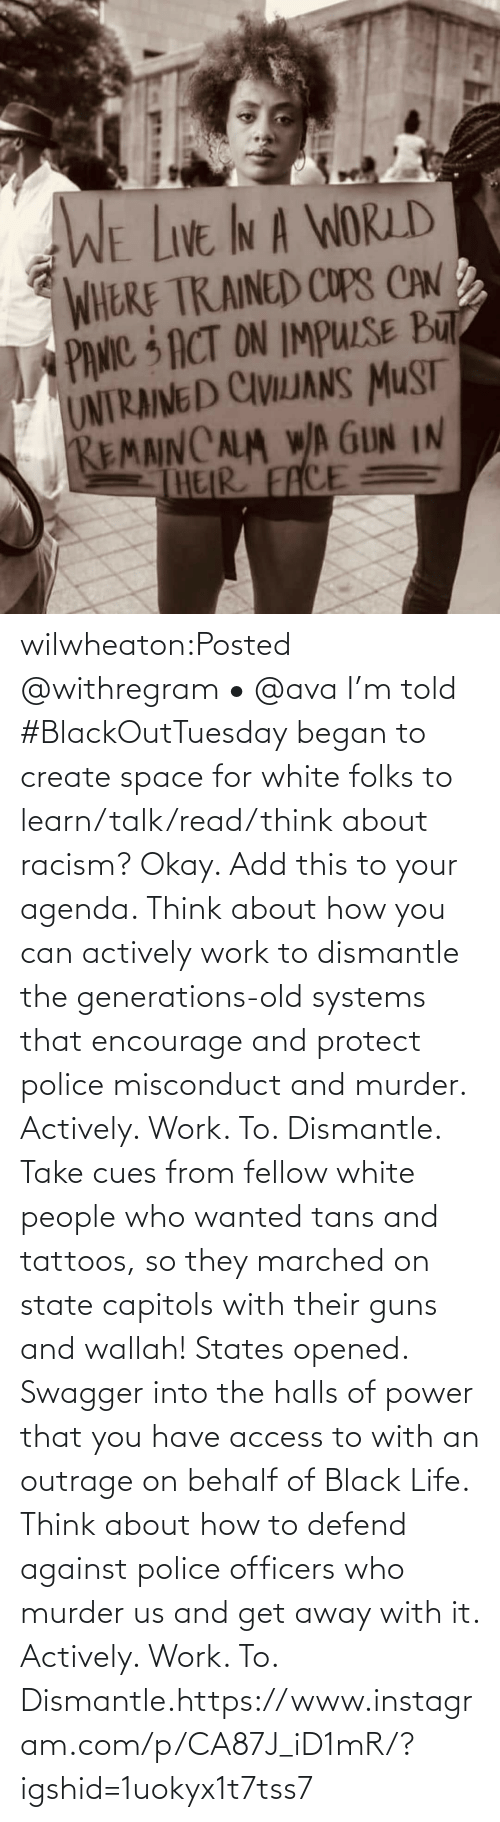 get away: wilwheaton:Posted @withregram • @ava I'm told #BlackOutTuesday began to create space for white folks to learn/talk/read/think about racism? Okay. Add this to your agenda. Think about how you can actively work to dismantle the generations-old systems that encourage and protect police misconduct and murder. Actively. Work. To. Dismantle. Take cues from fellow white people who wanted tans and tattoos, so they marched on state capitols with their guns and wallah! States opened. Swagger into the halls of power that you have access to with an outrage on behalf of Black Life. Think about how to defend against police officers who murder us and get away with it. Actively. Work. To. Dismantle.https://www.instagram.com/p/CA87J_iD1mR/?igshid=1uokyx1t7tss7